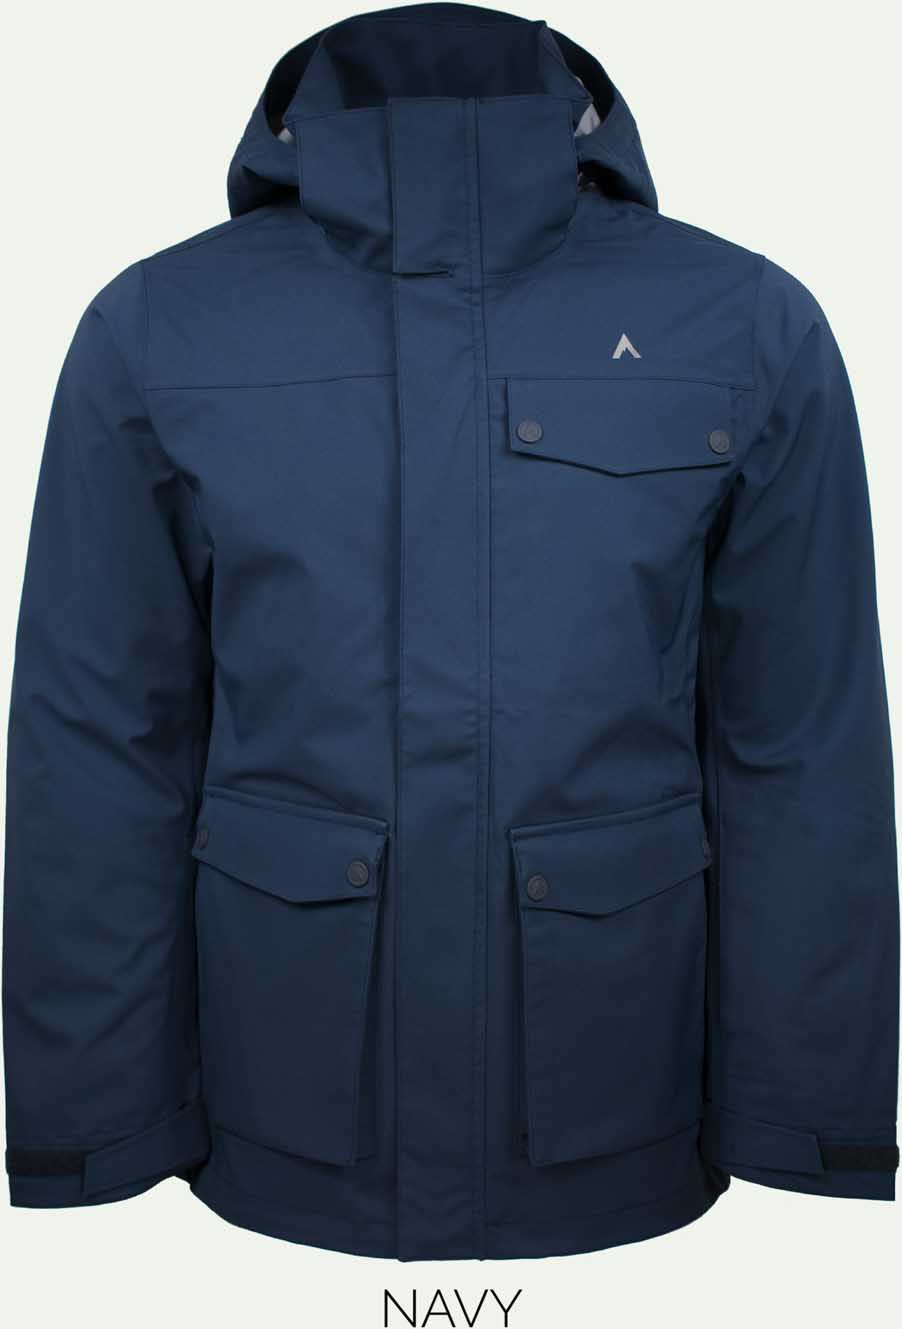 image terracea-peak-ltd-jacket-navy-jpg